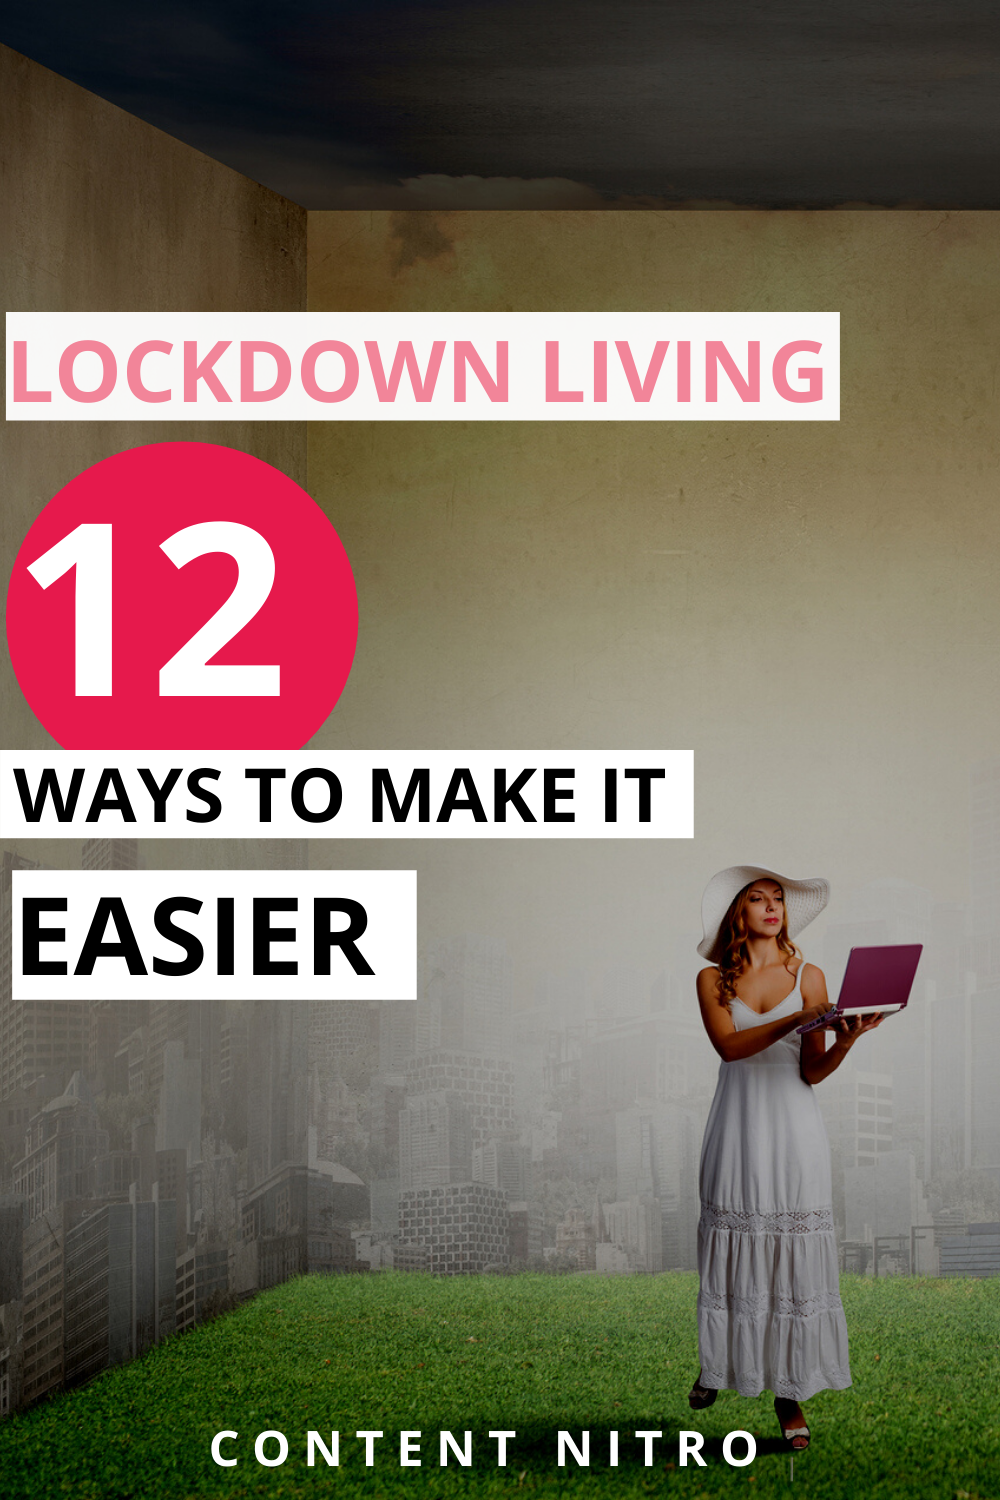 Lockdown Living: 12 Things That Make it Easier